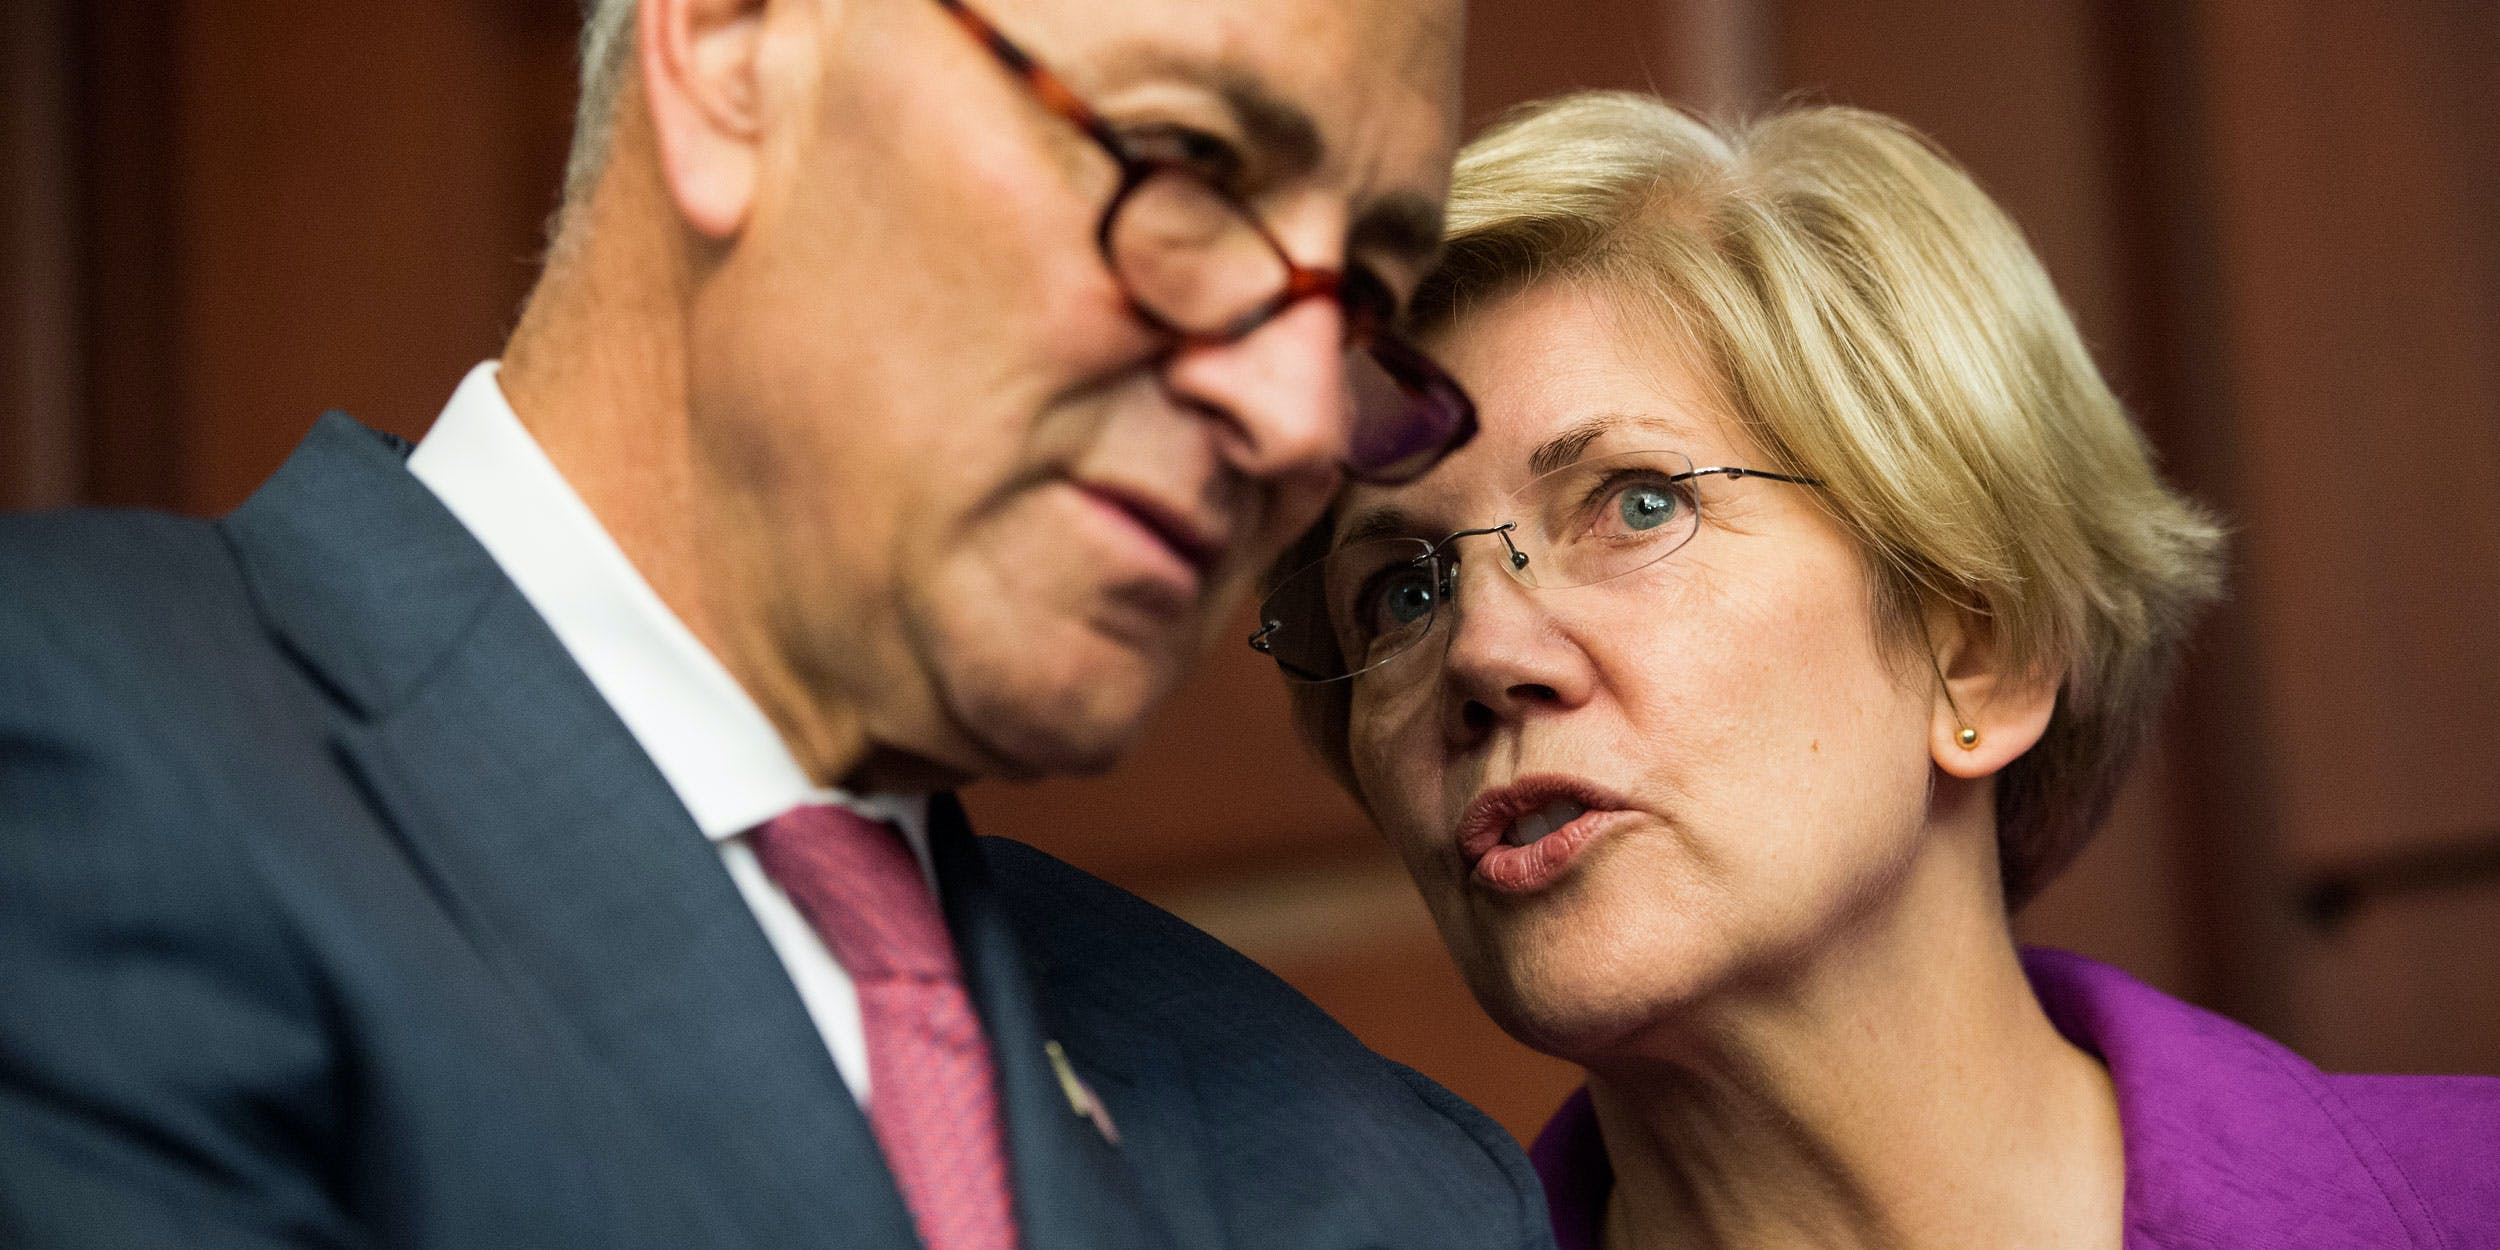 From left, Sen. Chuck Schumer, D-N.Y., and Sen. Elizabeth Warren, D-Mass., talk during the Senate Democrats' news conference on Tuesday, July 21, 2015. They've both been crucial to the marijuana legalization movement.